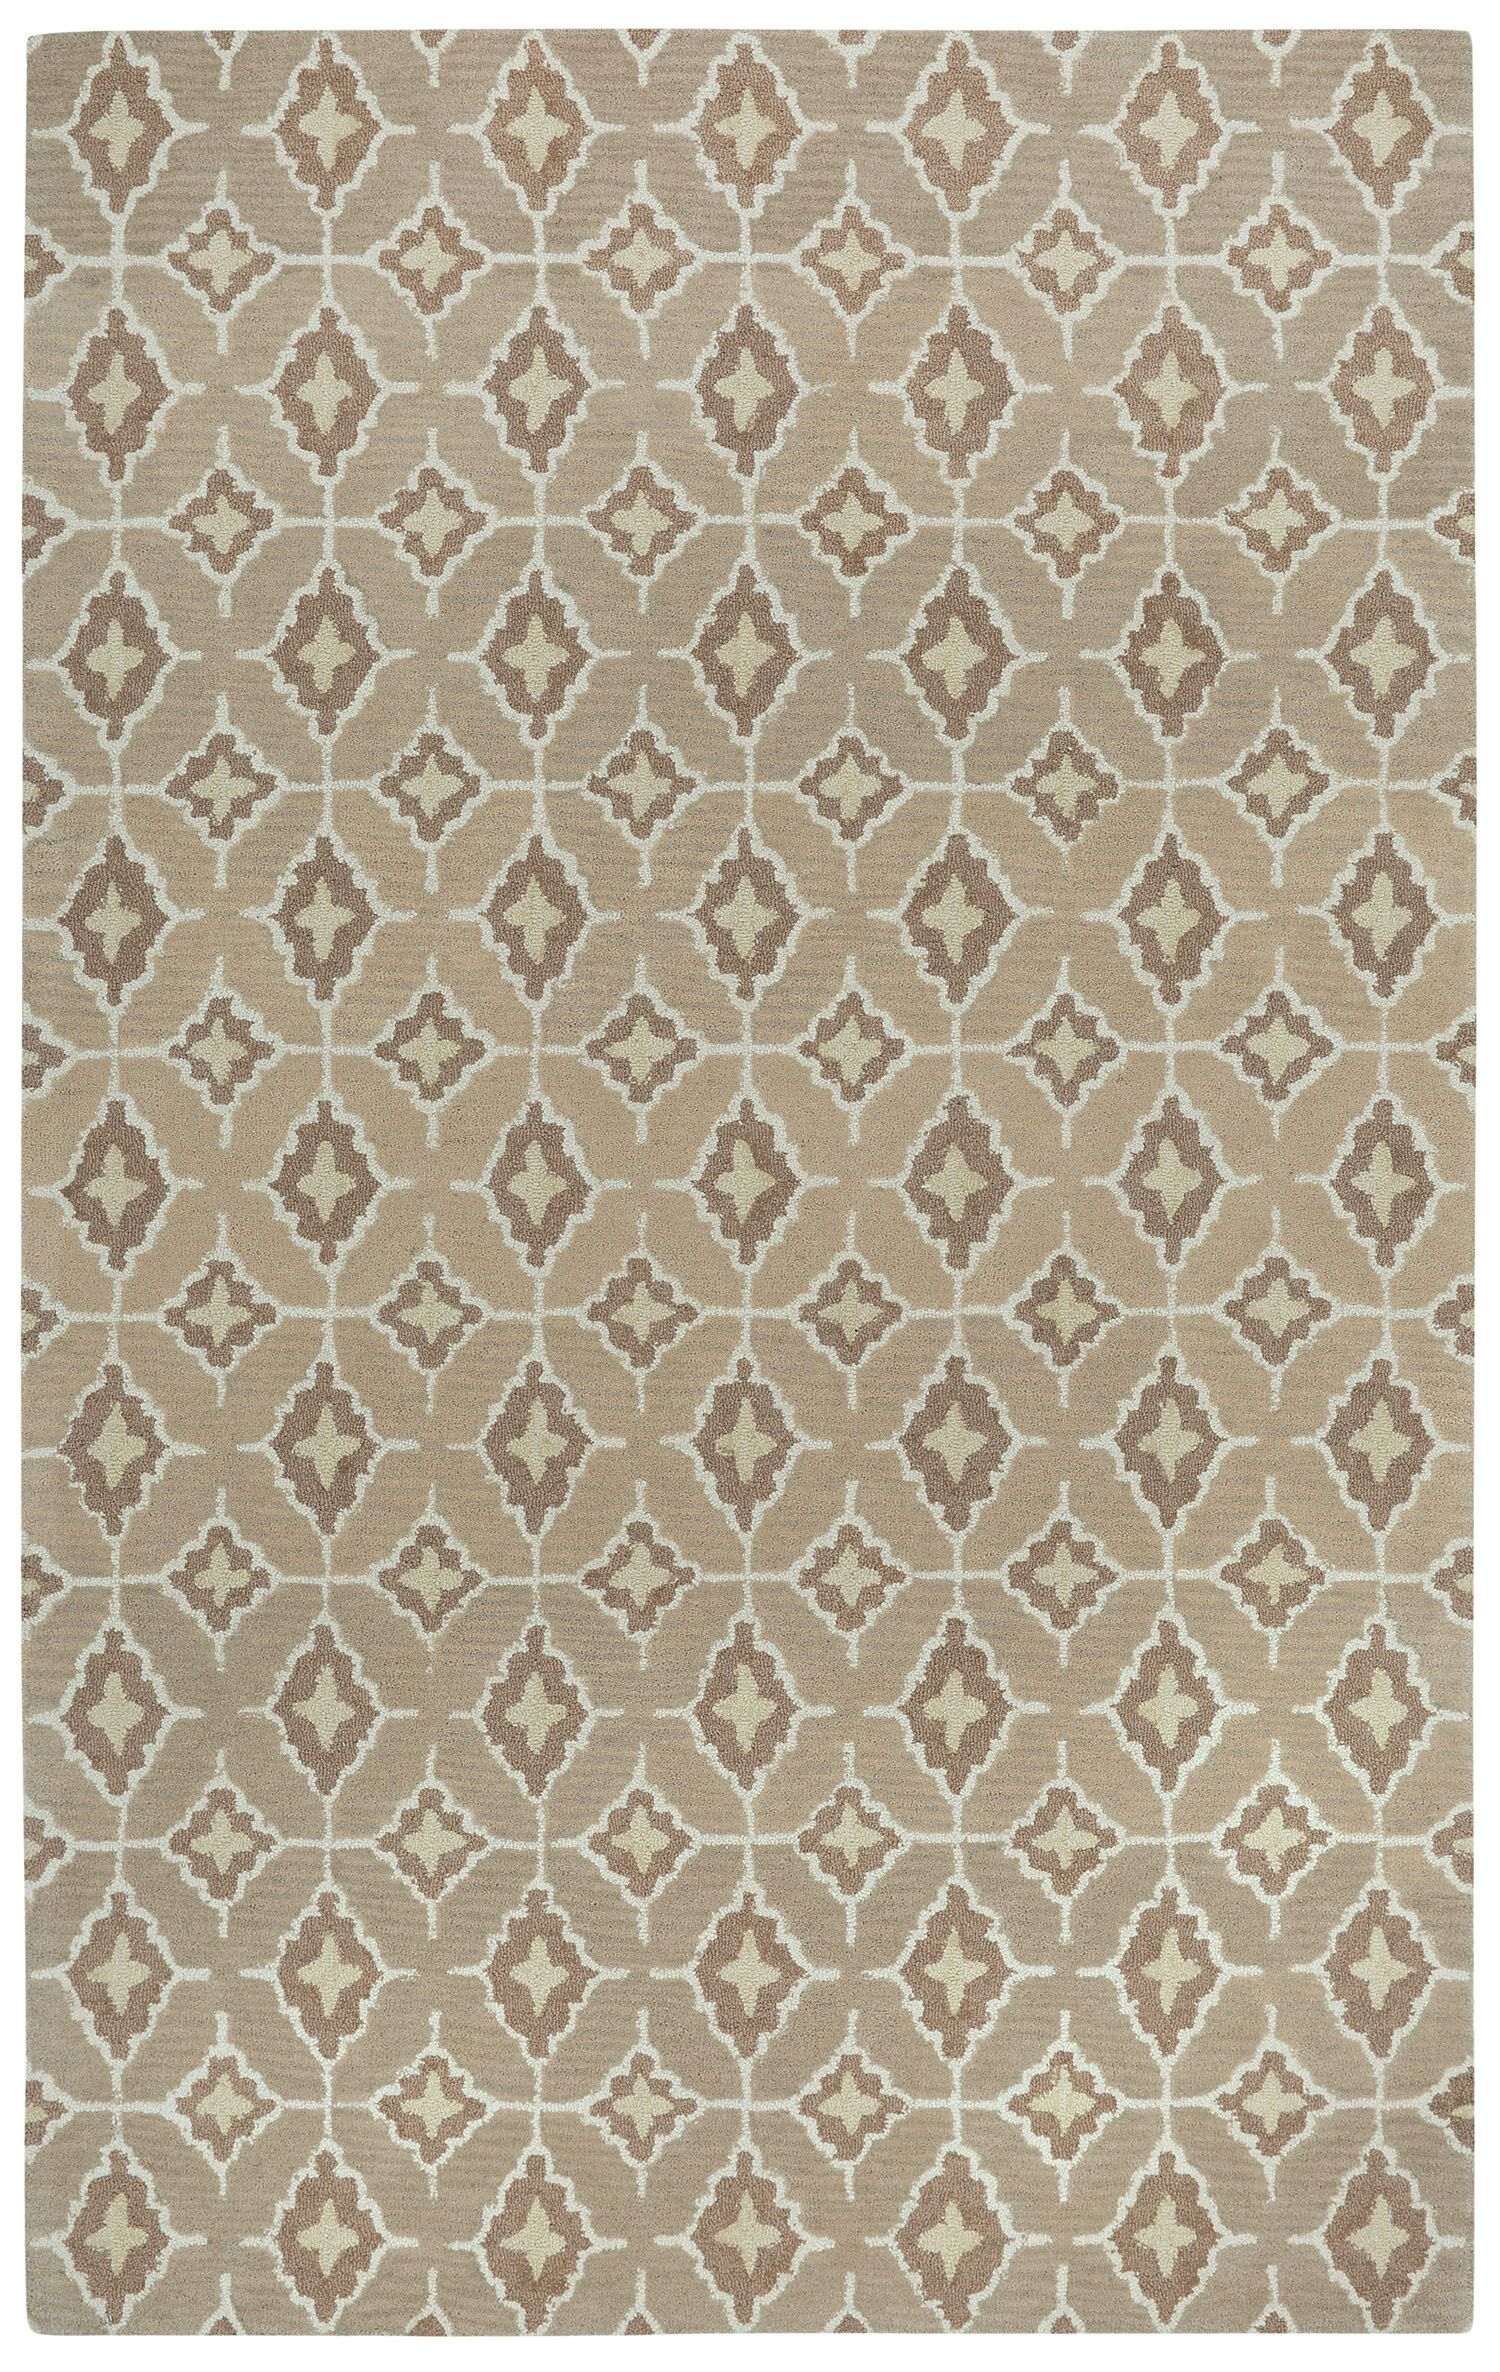 Kevin O'Brien Rossio Hand Tufted Biscuit/Yellow Area Rug Rug Size: 7' x 9'